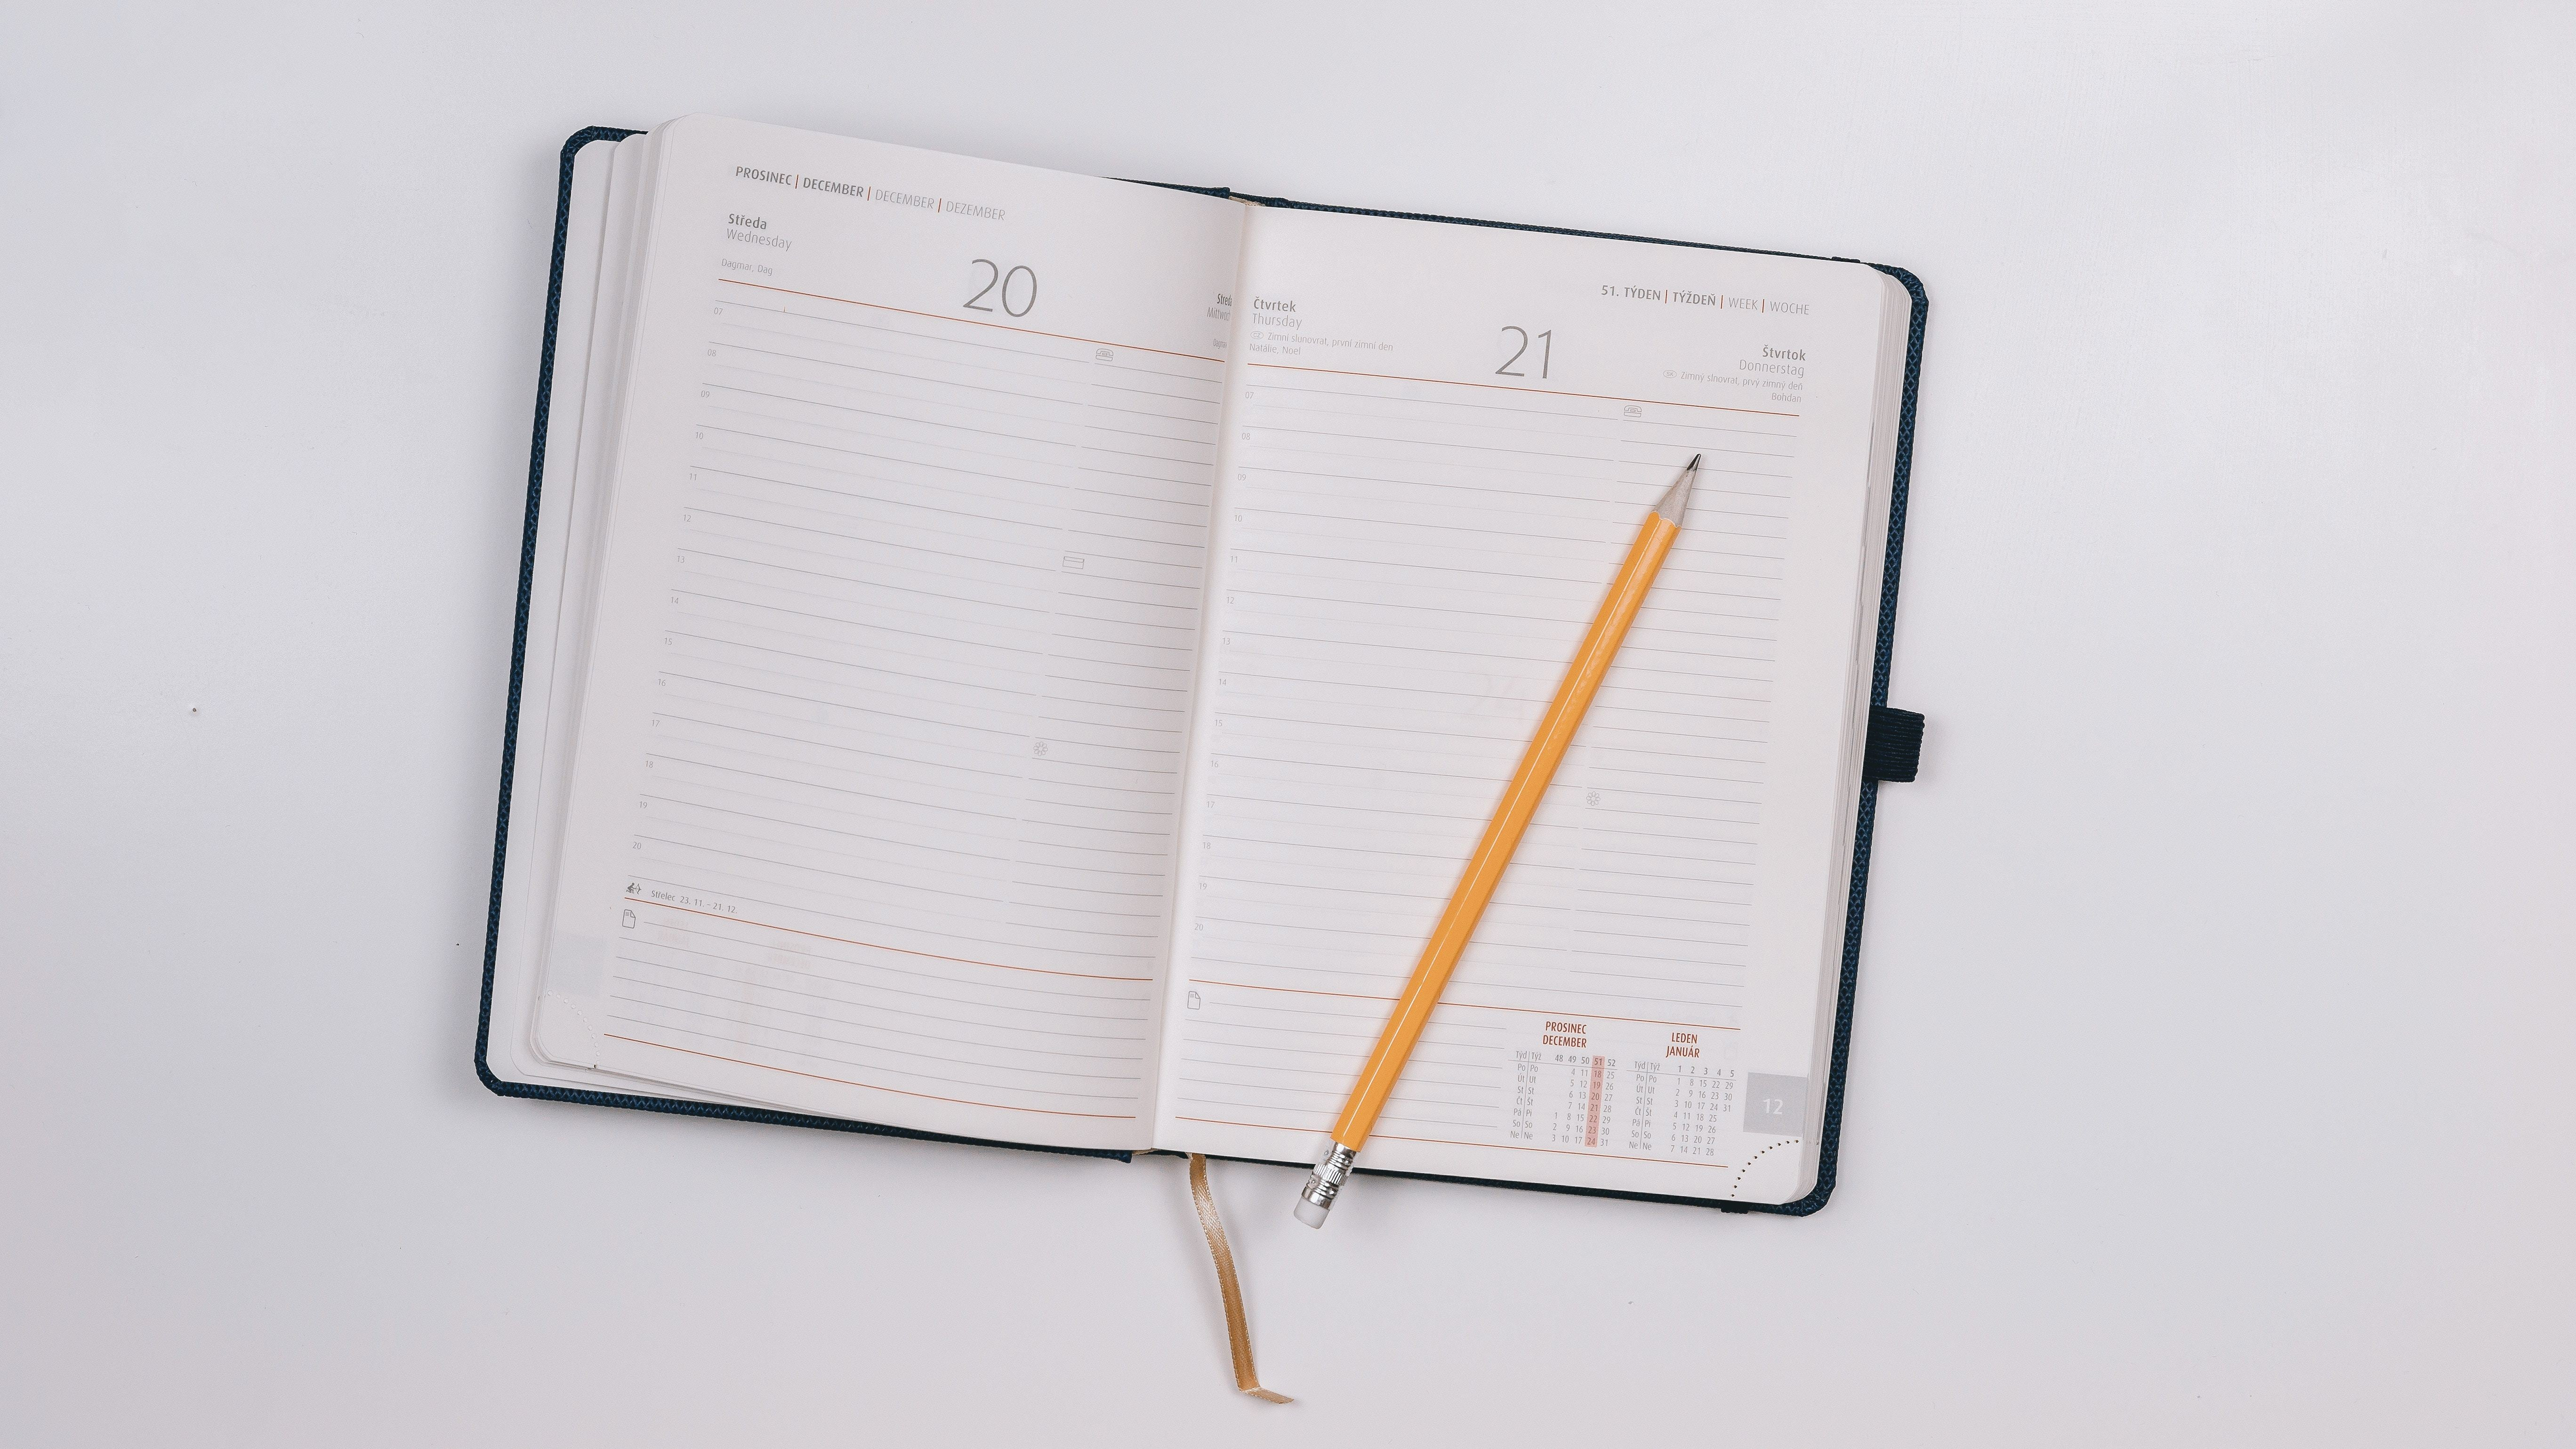 Prioritise Your To-Dos With A 'SUG' List